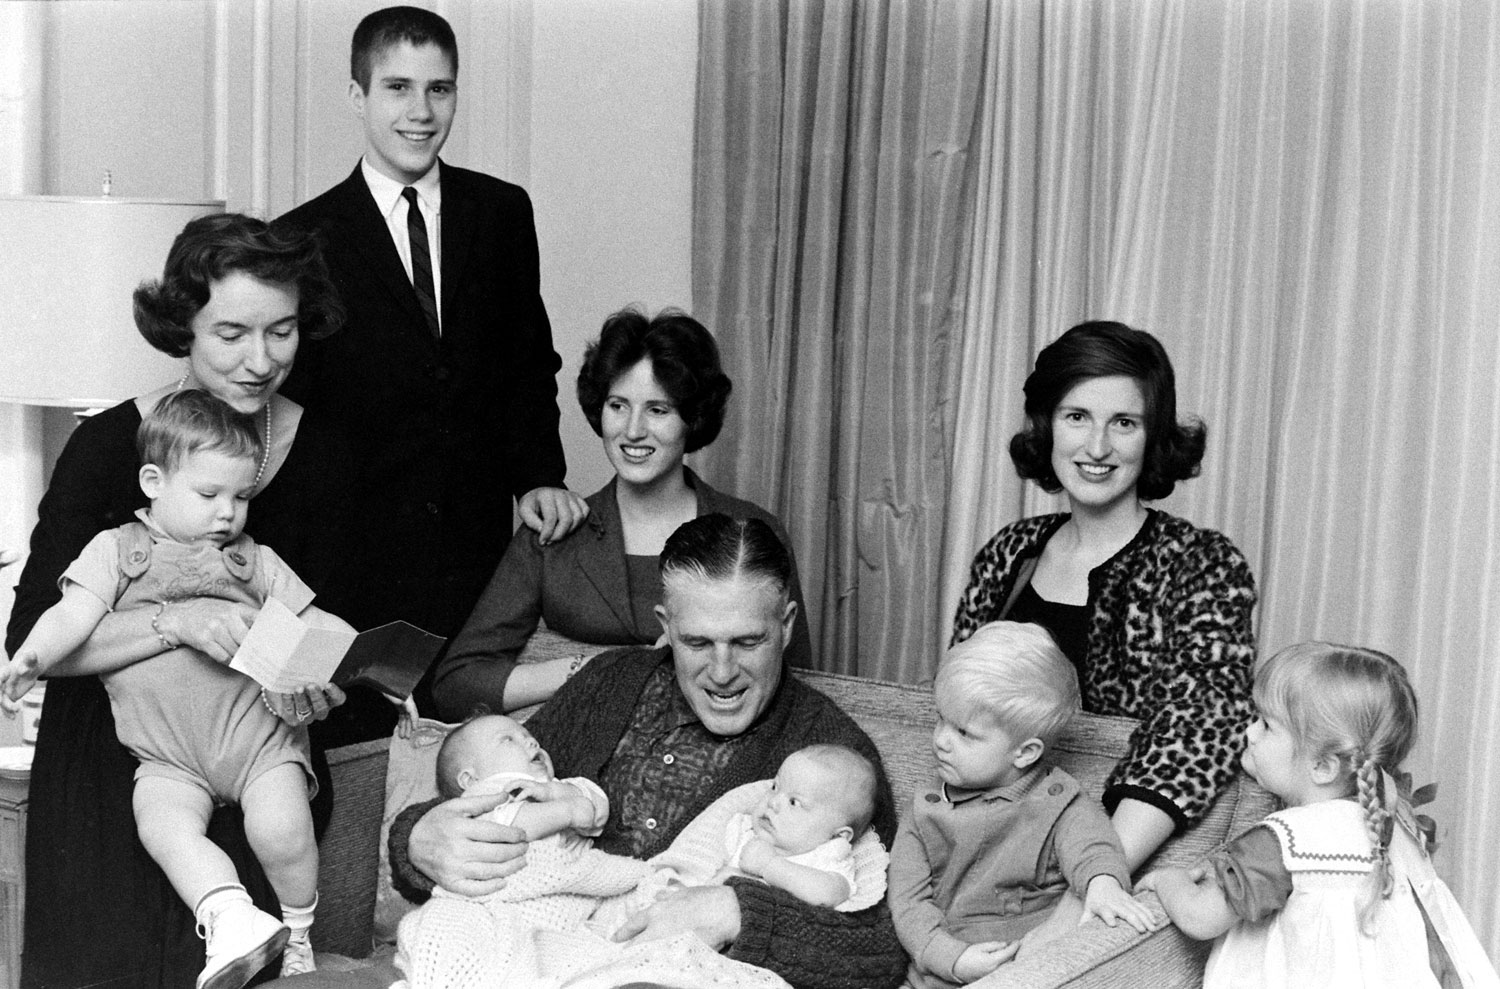 <b>Caption from LIFE.</b> After Sunday services the Romneys crowd onto a sofa in living room. Son Mitt and married daughters Jane and Lynn are at the rear. From left, grandchildren are Gregory (held by Lenore), Douglas, Susan, Brett and Jody. Another son, Scott, is in England with a mission group.